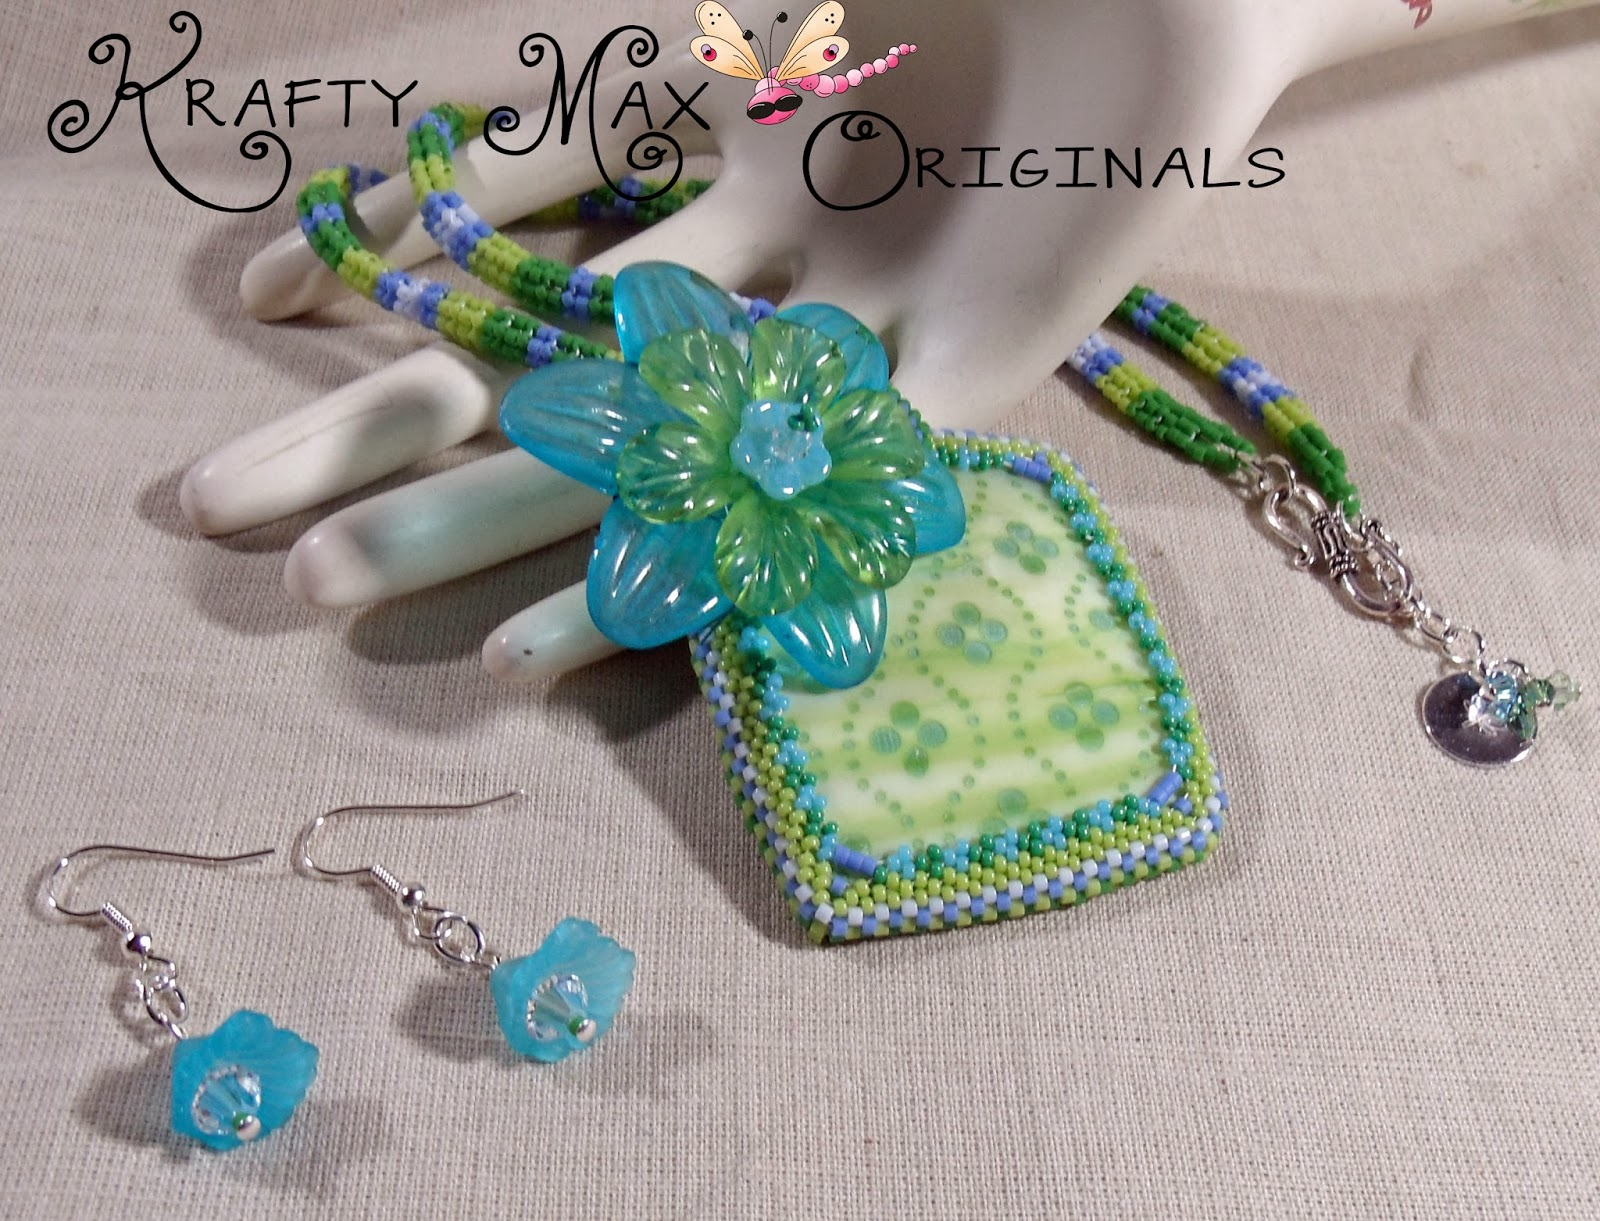 http://www.artfire.com/ext/shop/product_view/KraftyMax/8790765/green_and_blue_beadwoven_necklace_set_with_by_krafty_max_originals/handmade/jewelry/necklaces/beadwoven